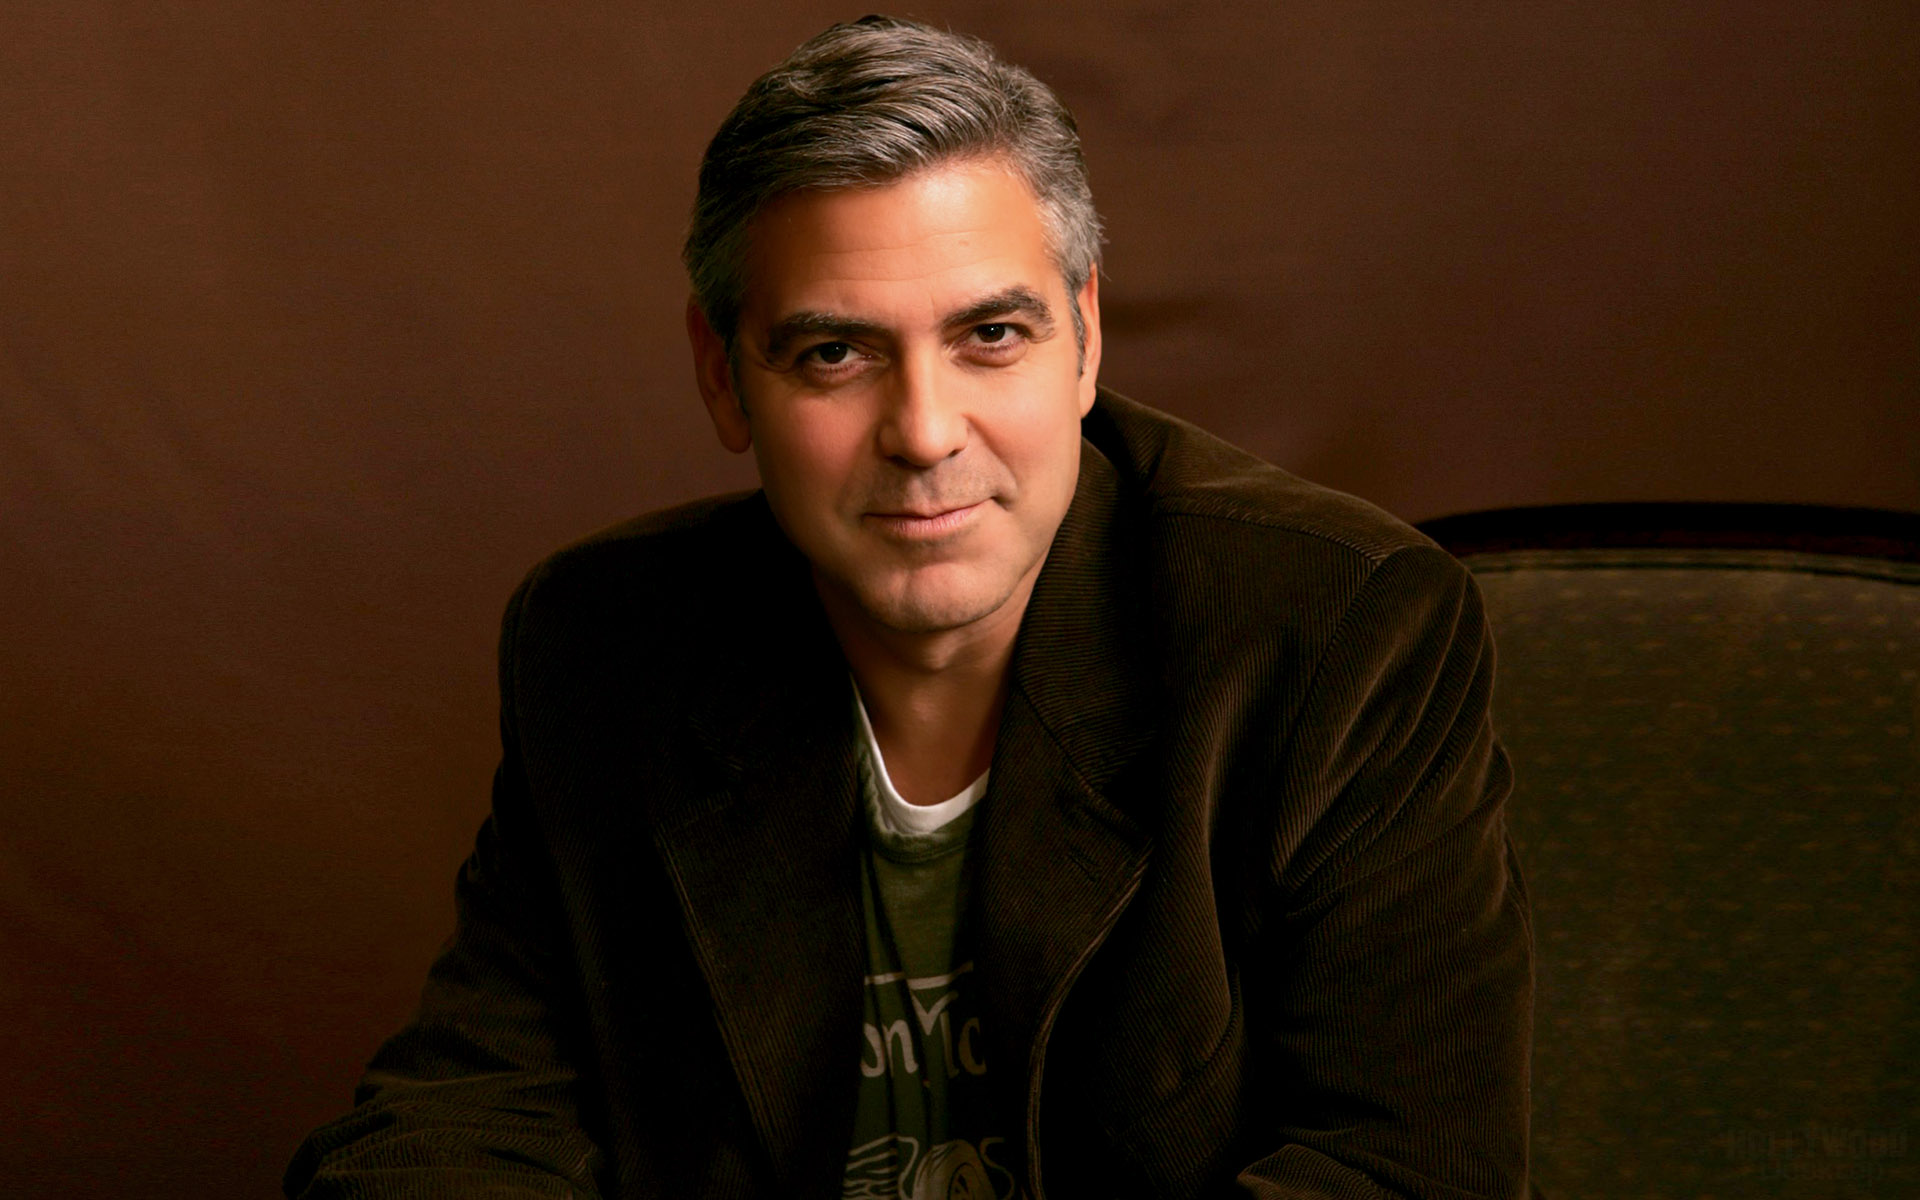 George Clooney Wallpaper 7